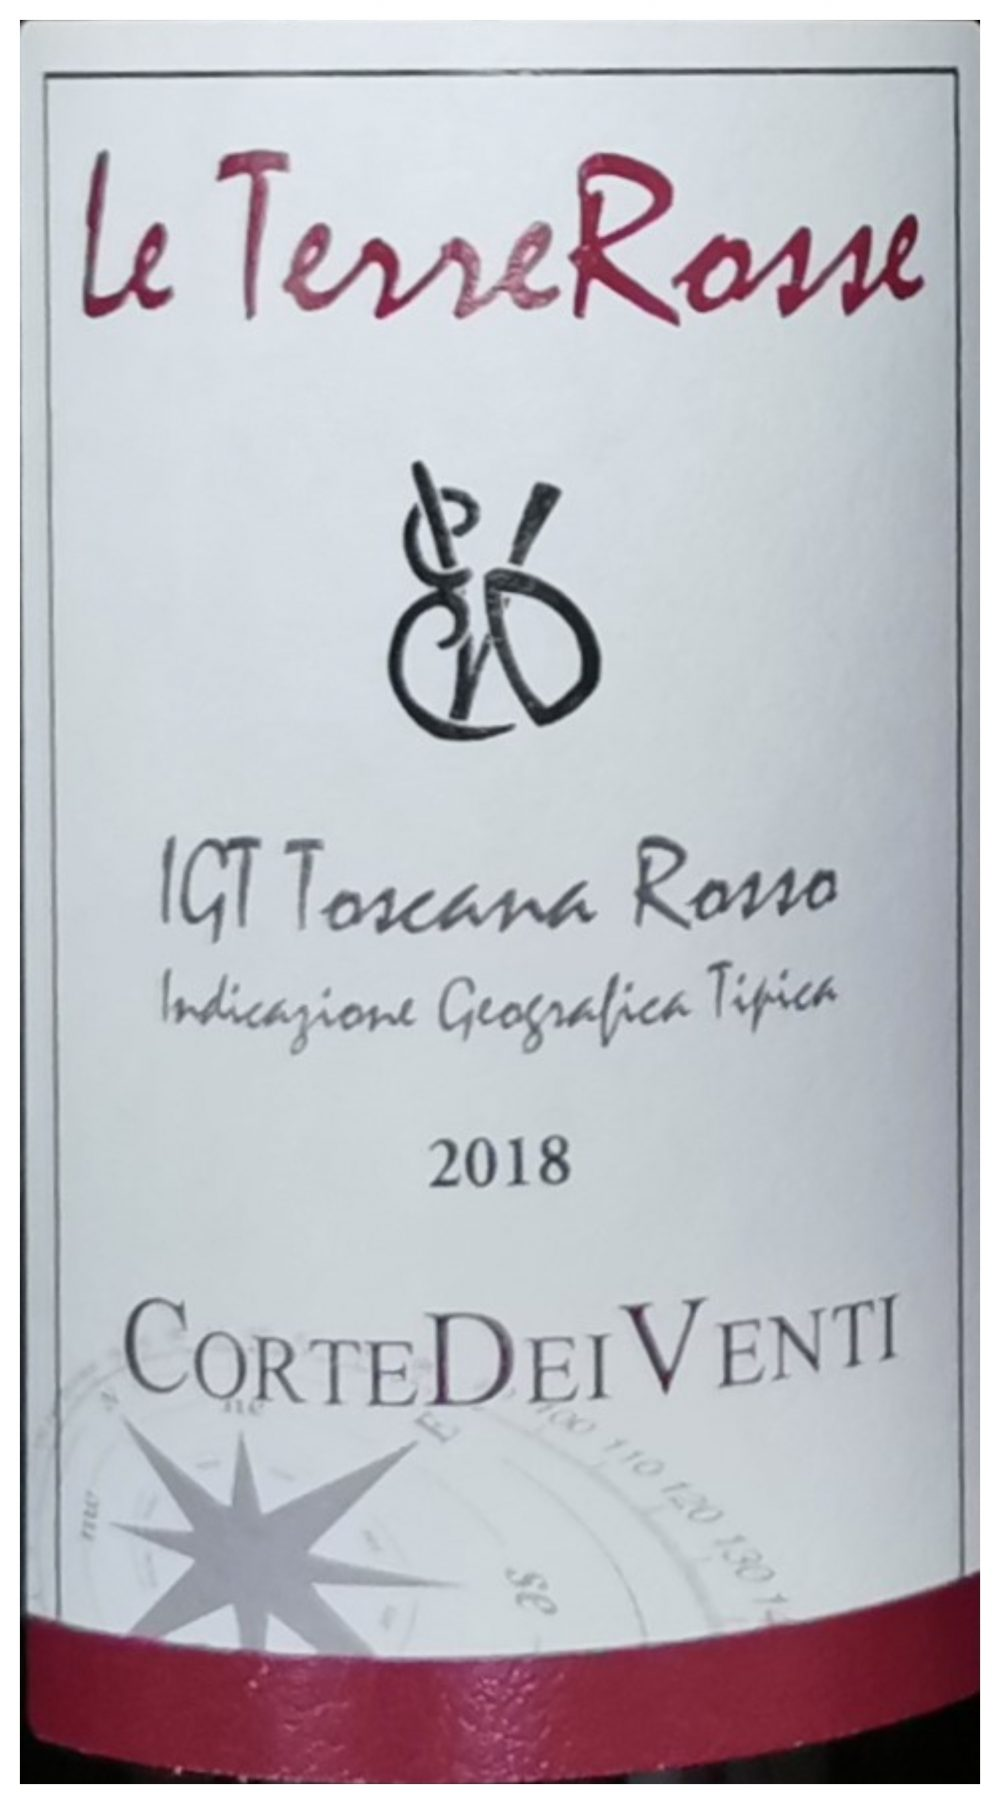 IGT Toscana Rosso 2018 Le Terre Rosse